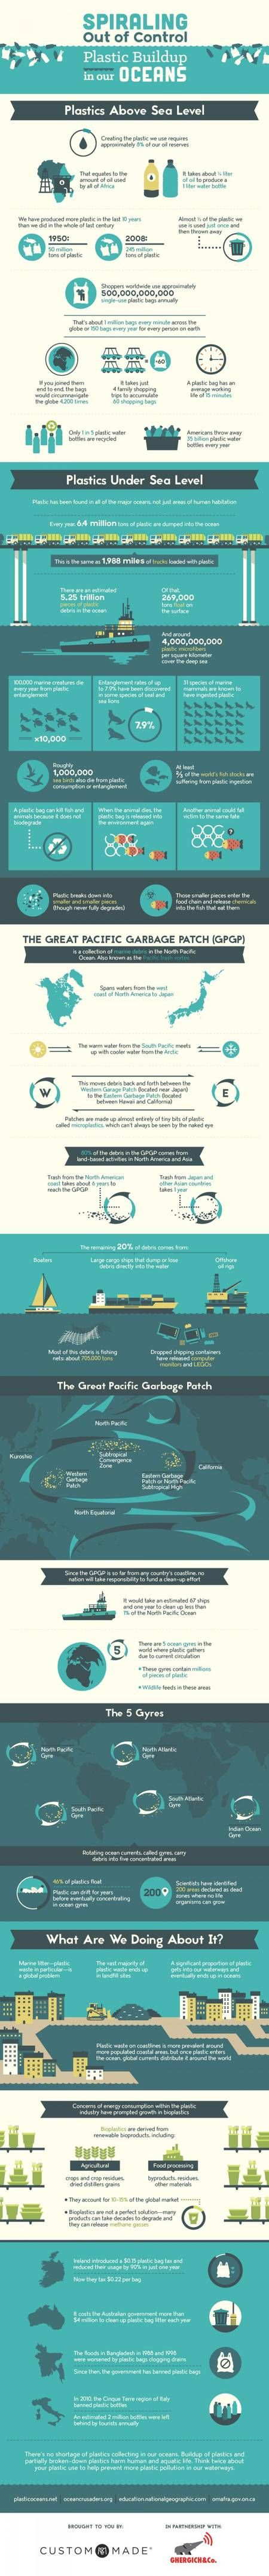 Disturbing infographic shows how plastic is clogging our oceans